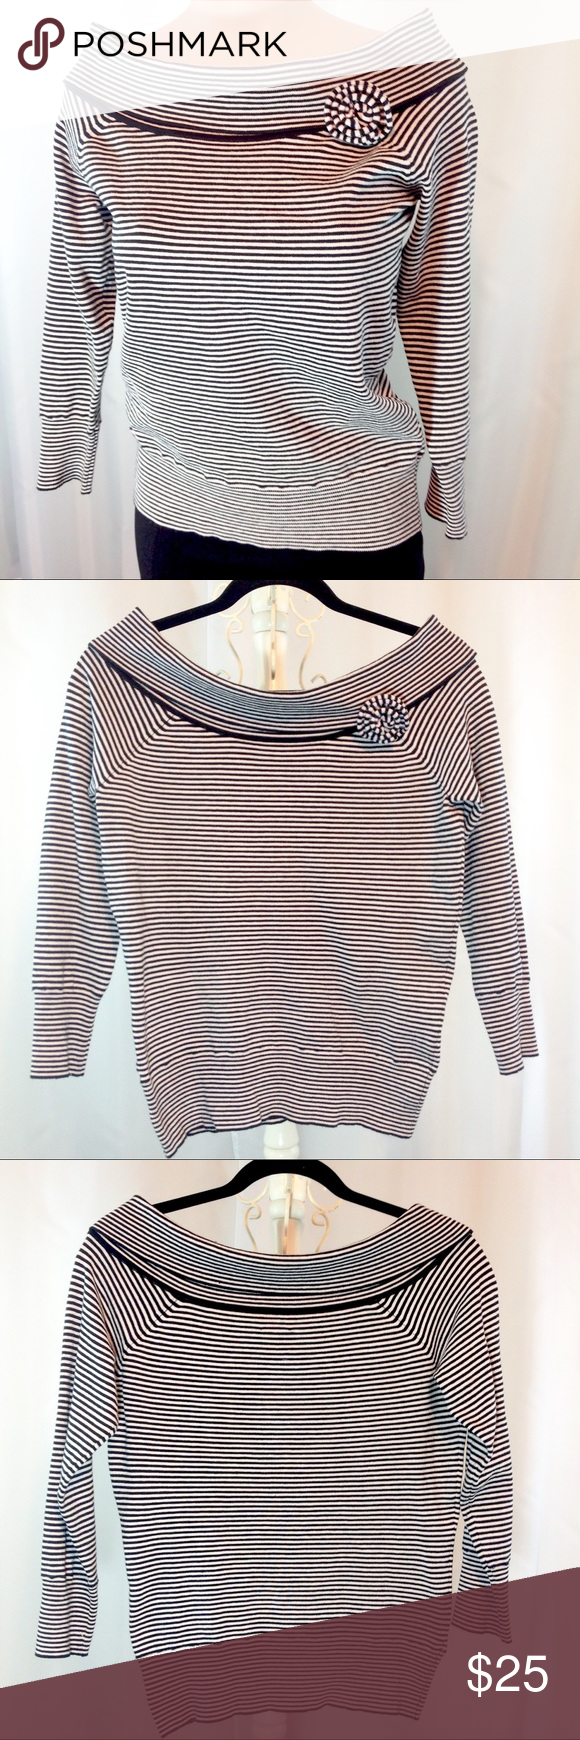 "INC International Concepts Striped Knit Top EUC Excellent condition! Like new! Black and white striped boat neck knit top. Silk blend. See tag pic. Super cute! 3/4 sleeves. Medium. Bust 17.5"" across laying flat. Length 22"" 🔹Please ask all your questions before you purchase!  🔹Sorry, no trades or holds. 🔹Please use Offer Button! 🔹Bundle for your best prices! INC International Concepts Tops Blouses"